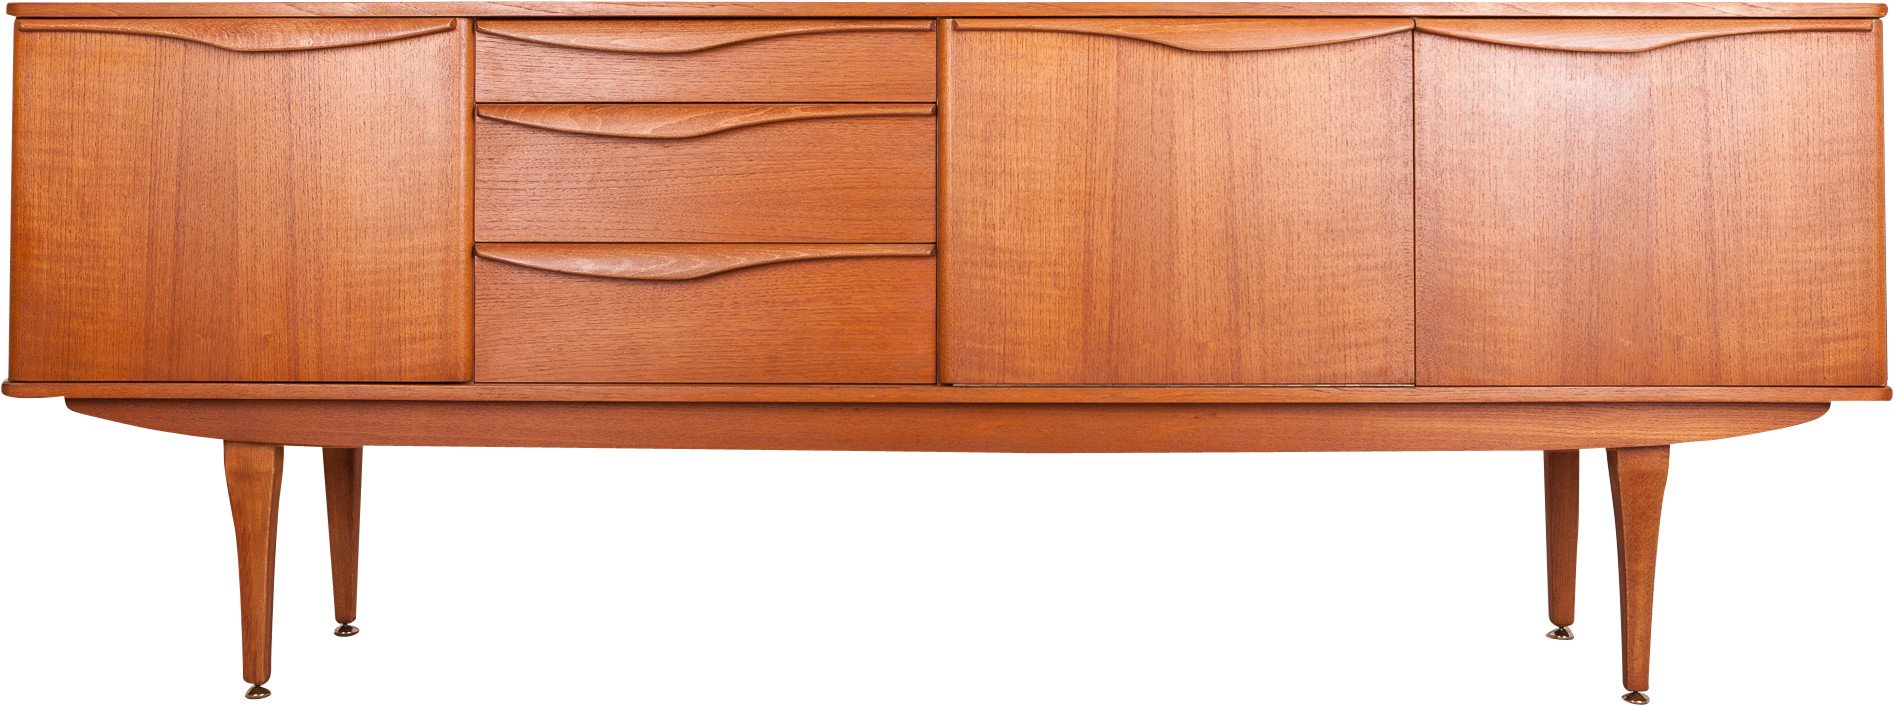 Sideboard, Stonehill, United Kingdom, 1960s